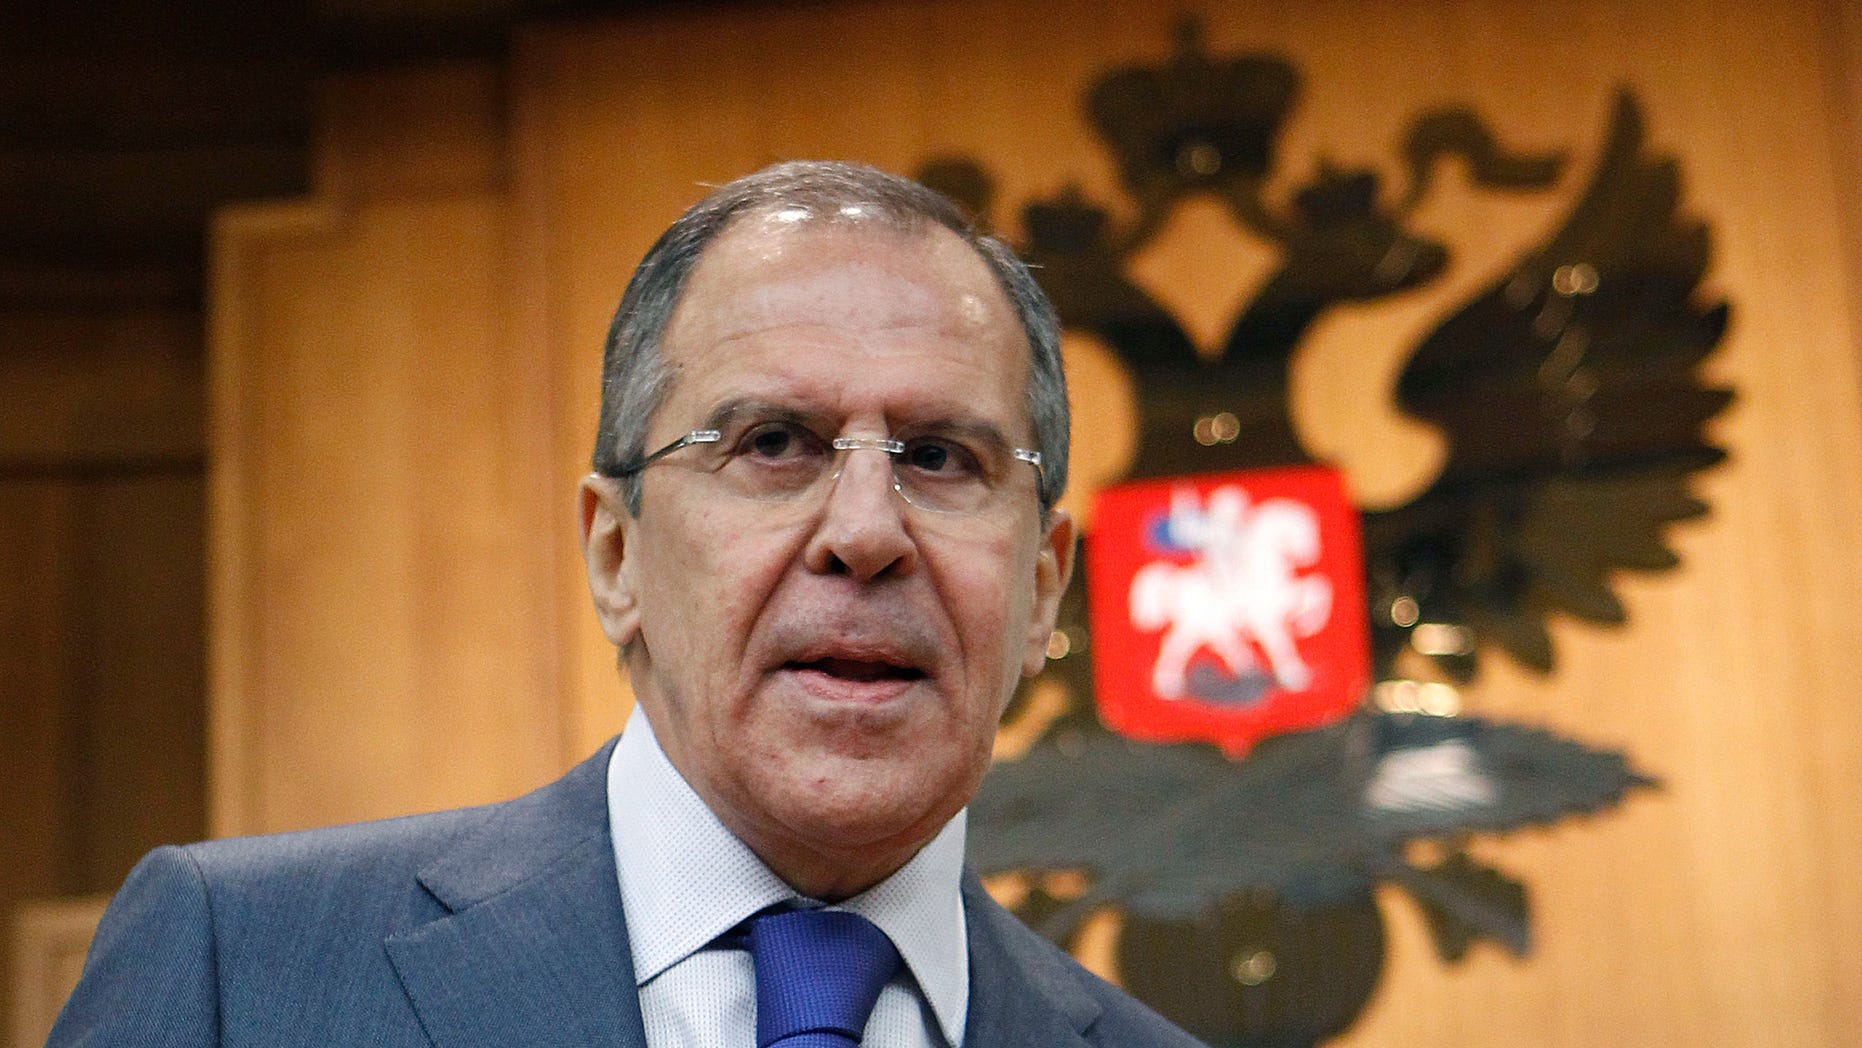 Jan. 18, 2012: A deal with Washington to assuage Moscow's concerns about U.S. missile defense plans in Europe is still possible, but time is running out, Russia's foreign minister said Wednesday.